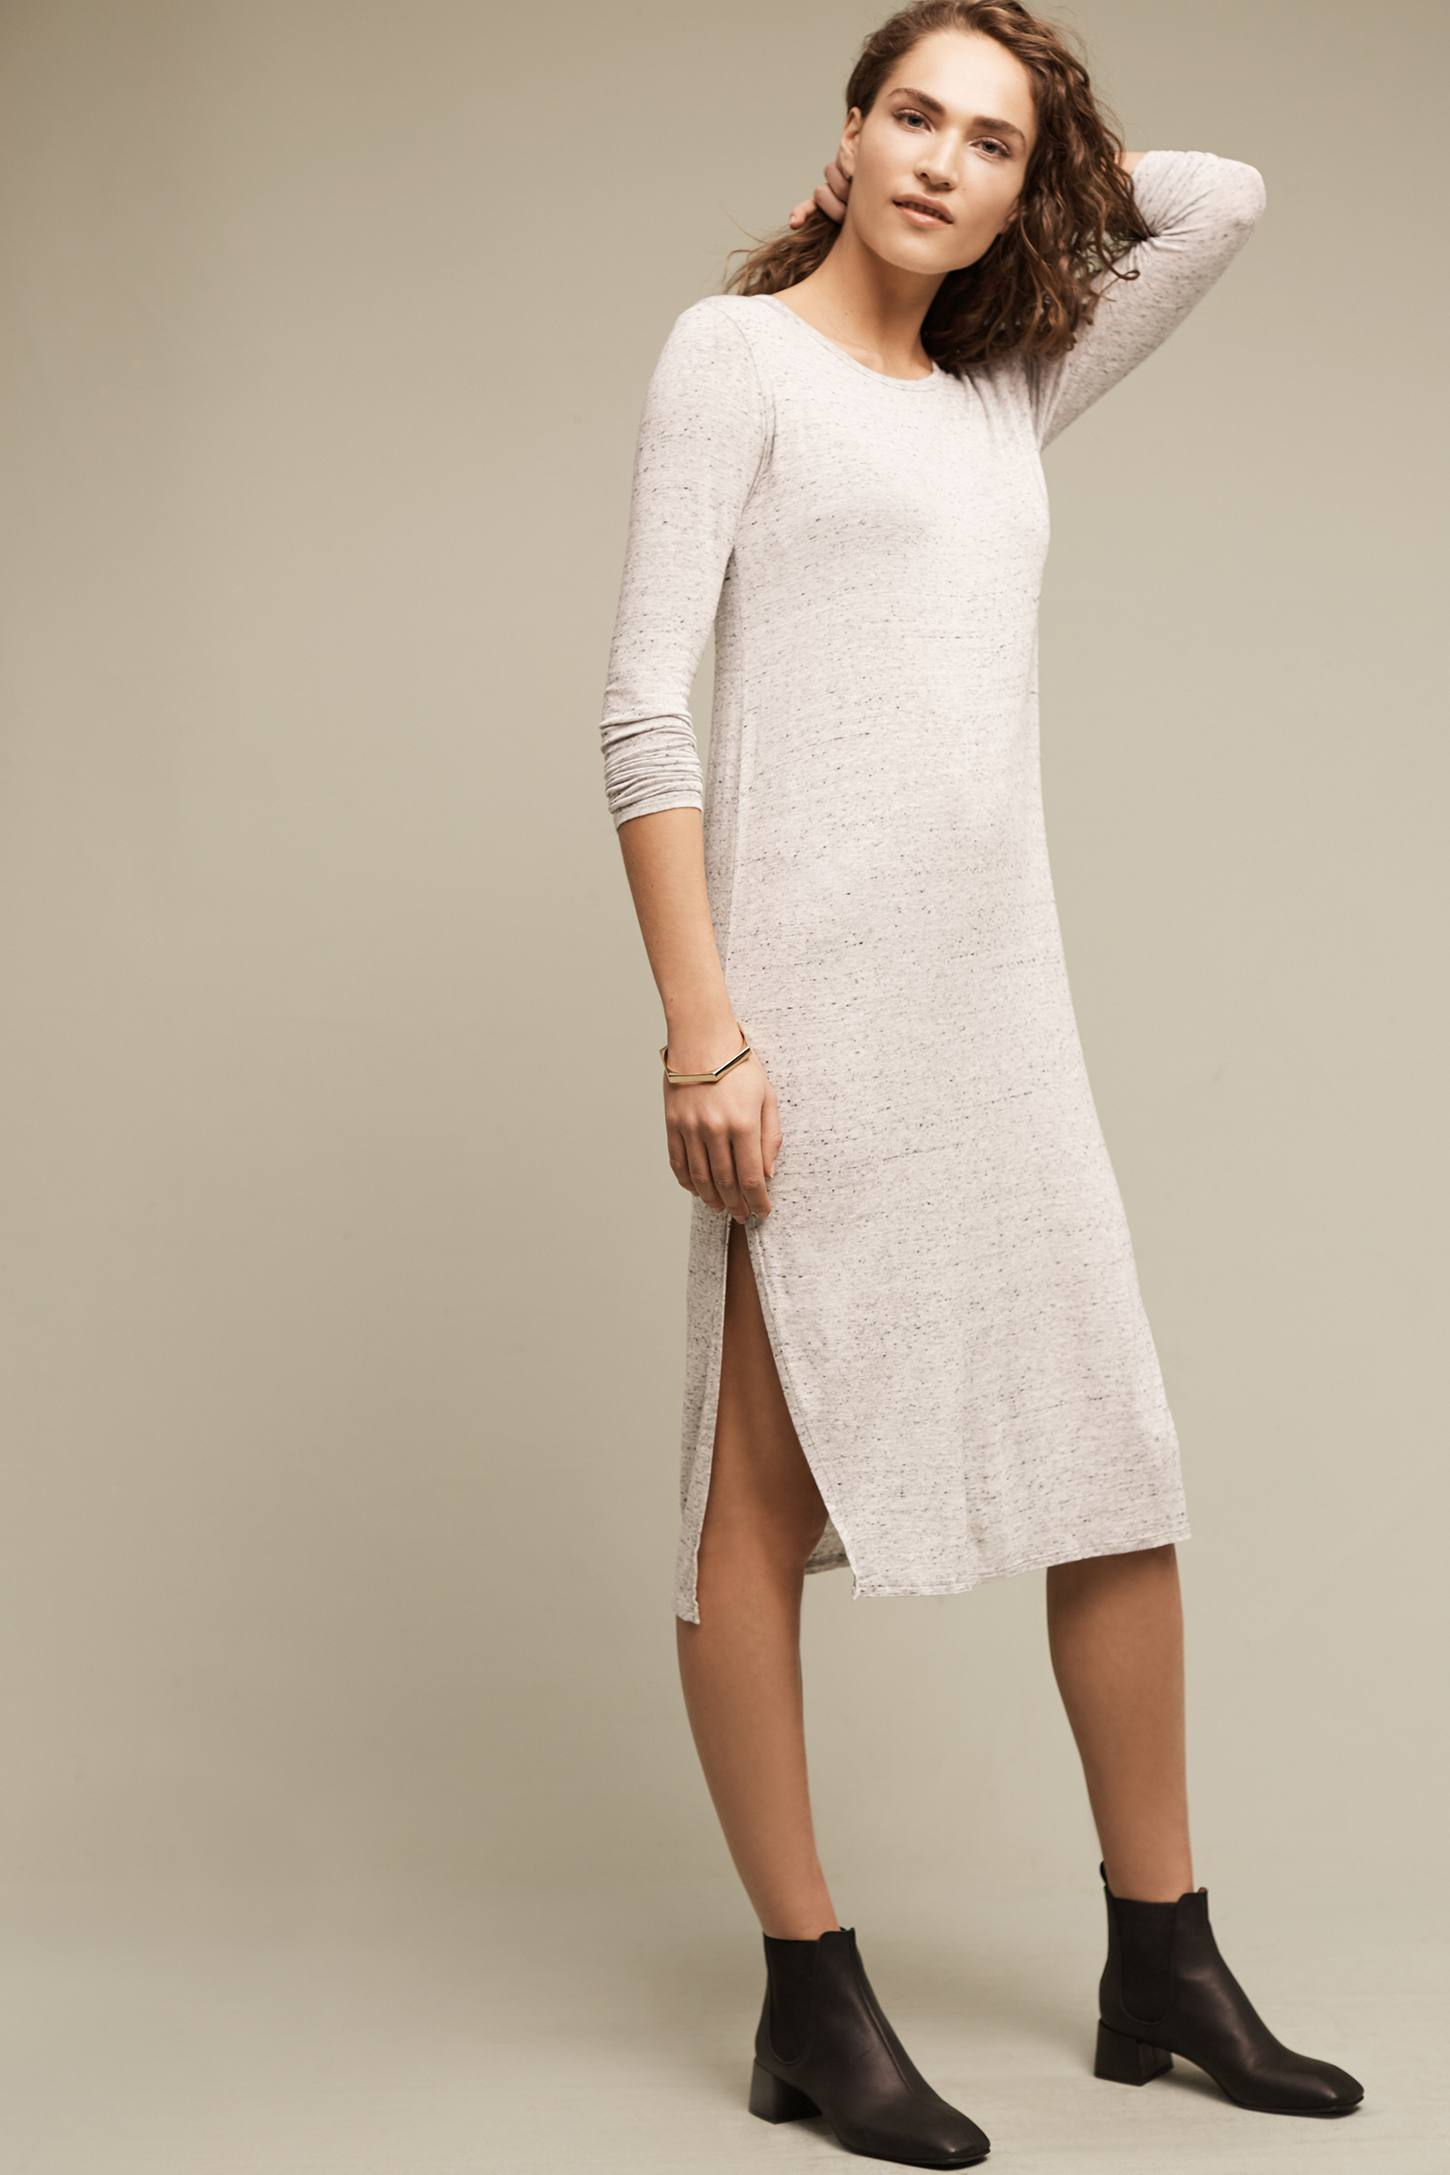 Slide View: 1: Marled T-Shirt Dress